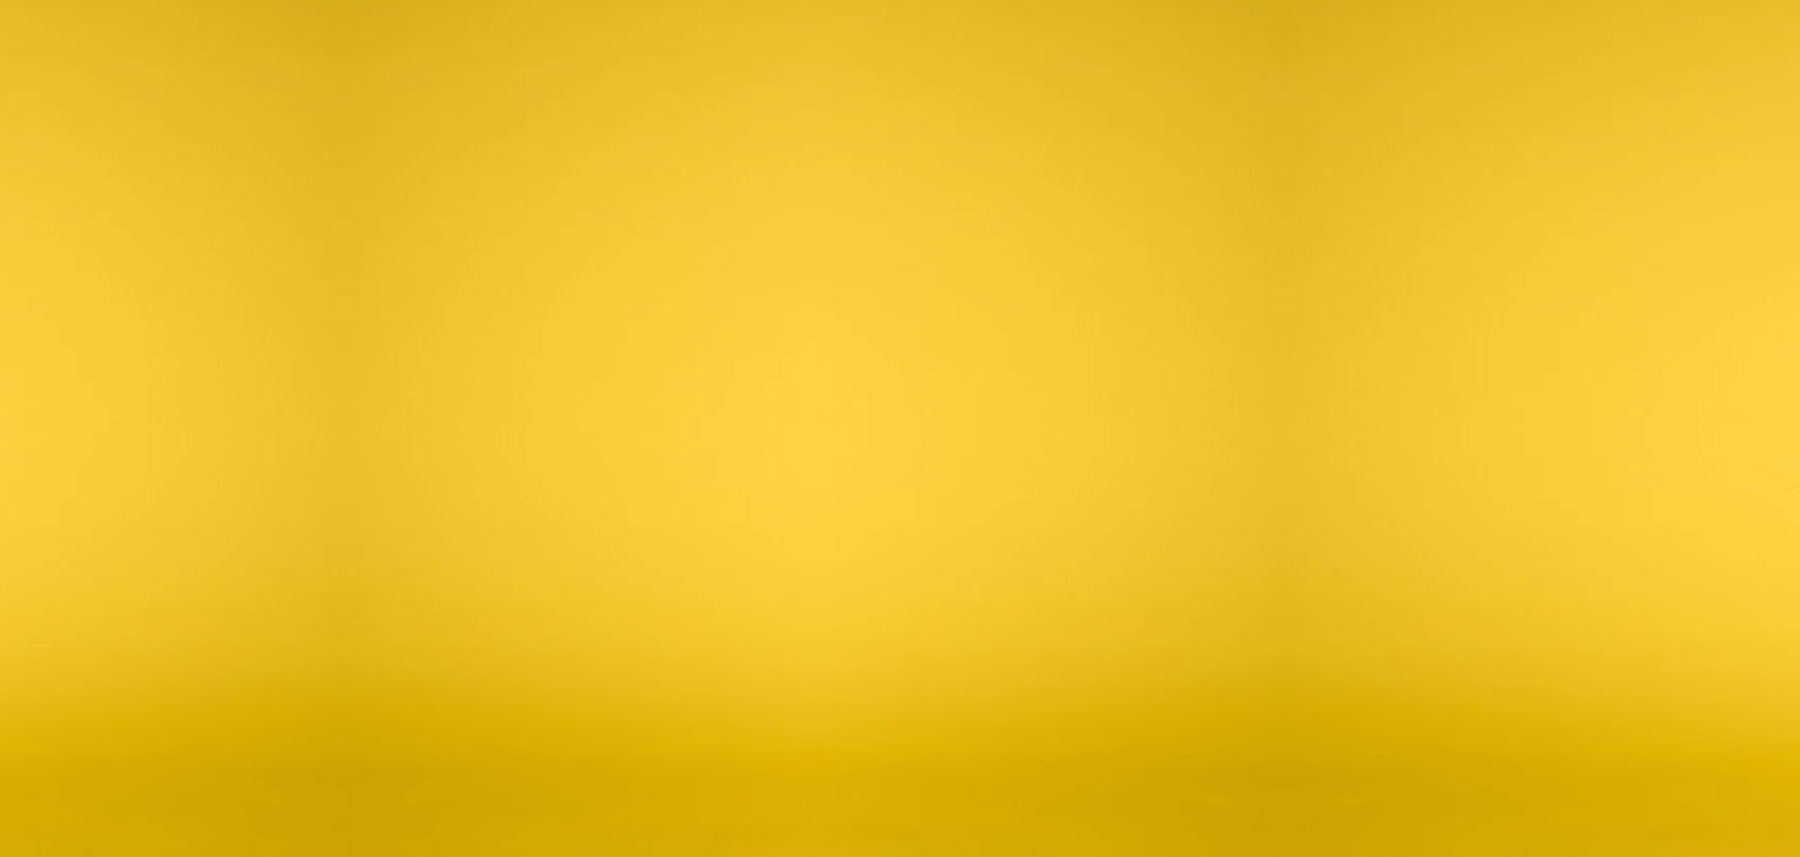 yellow.dog_BG